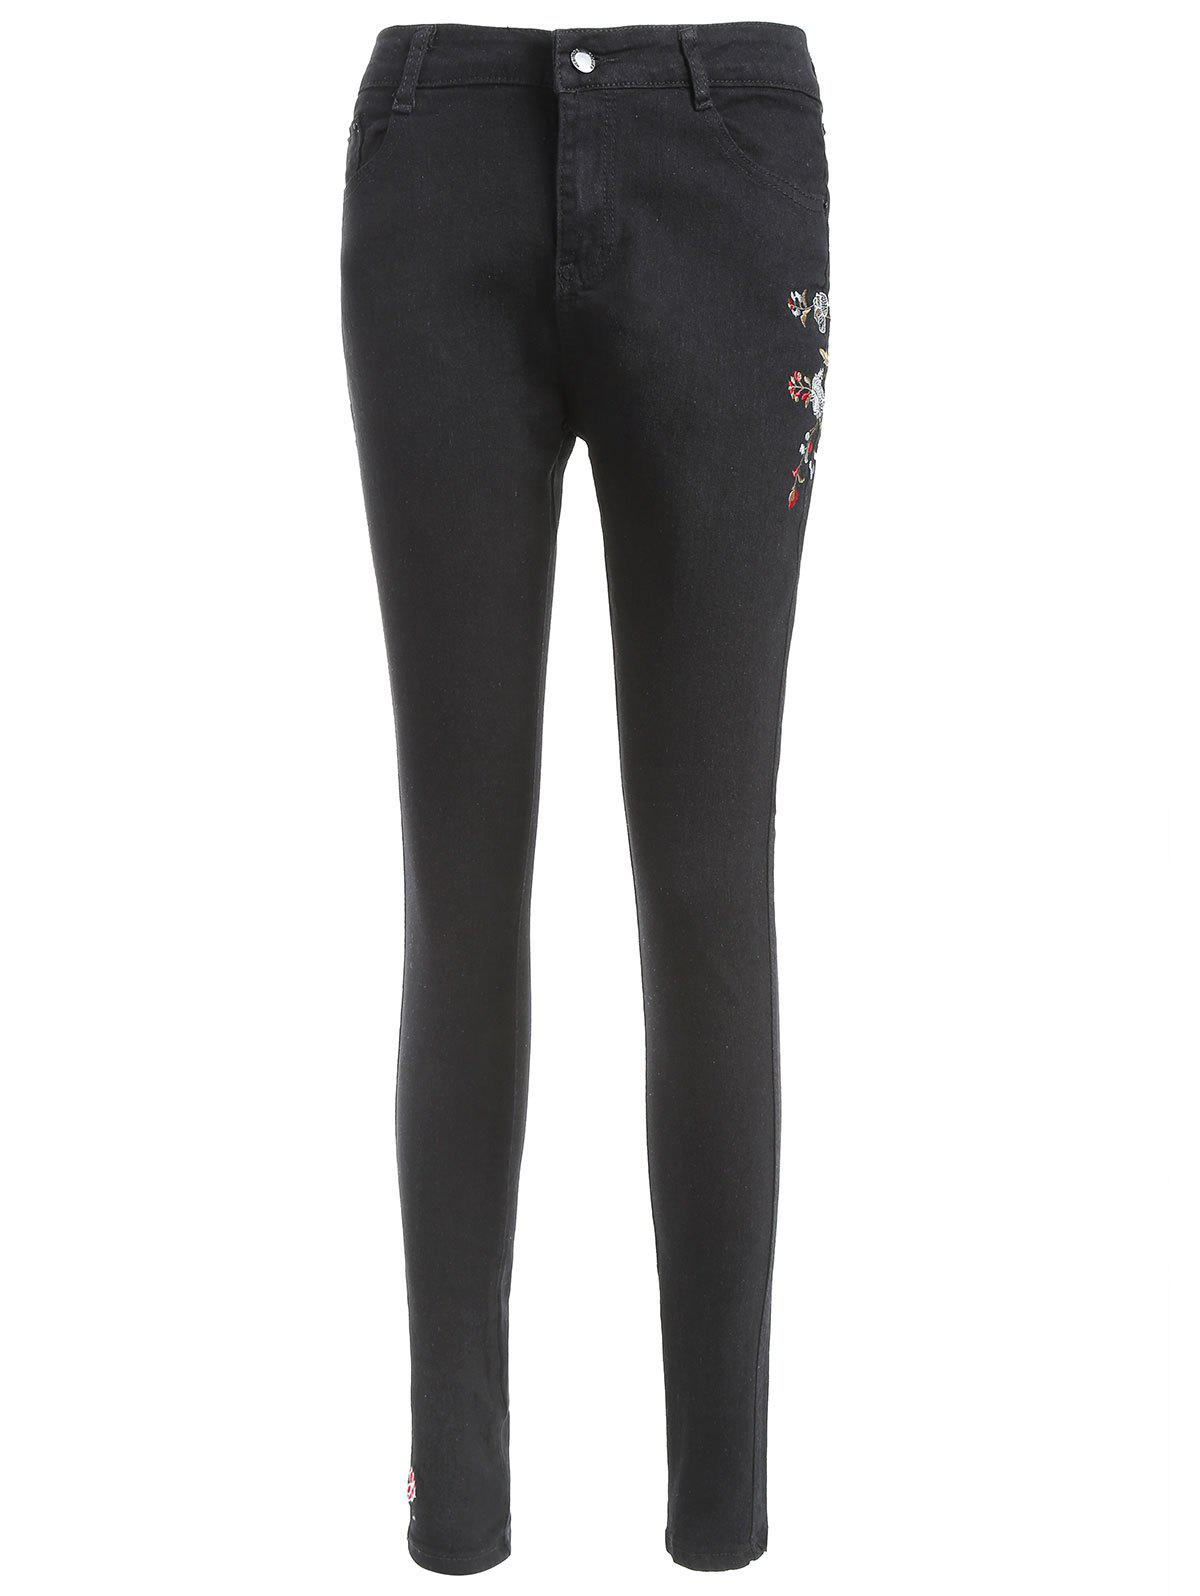 Shops Floral Embroidery Slim Jeans